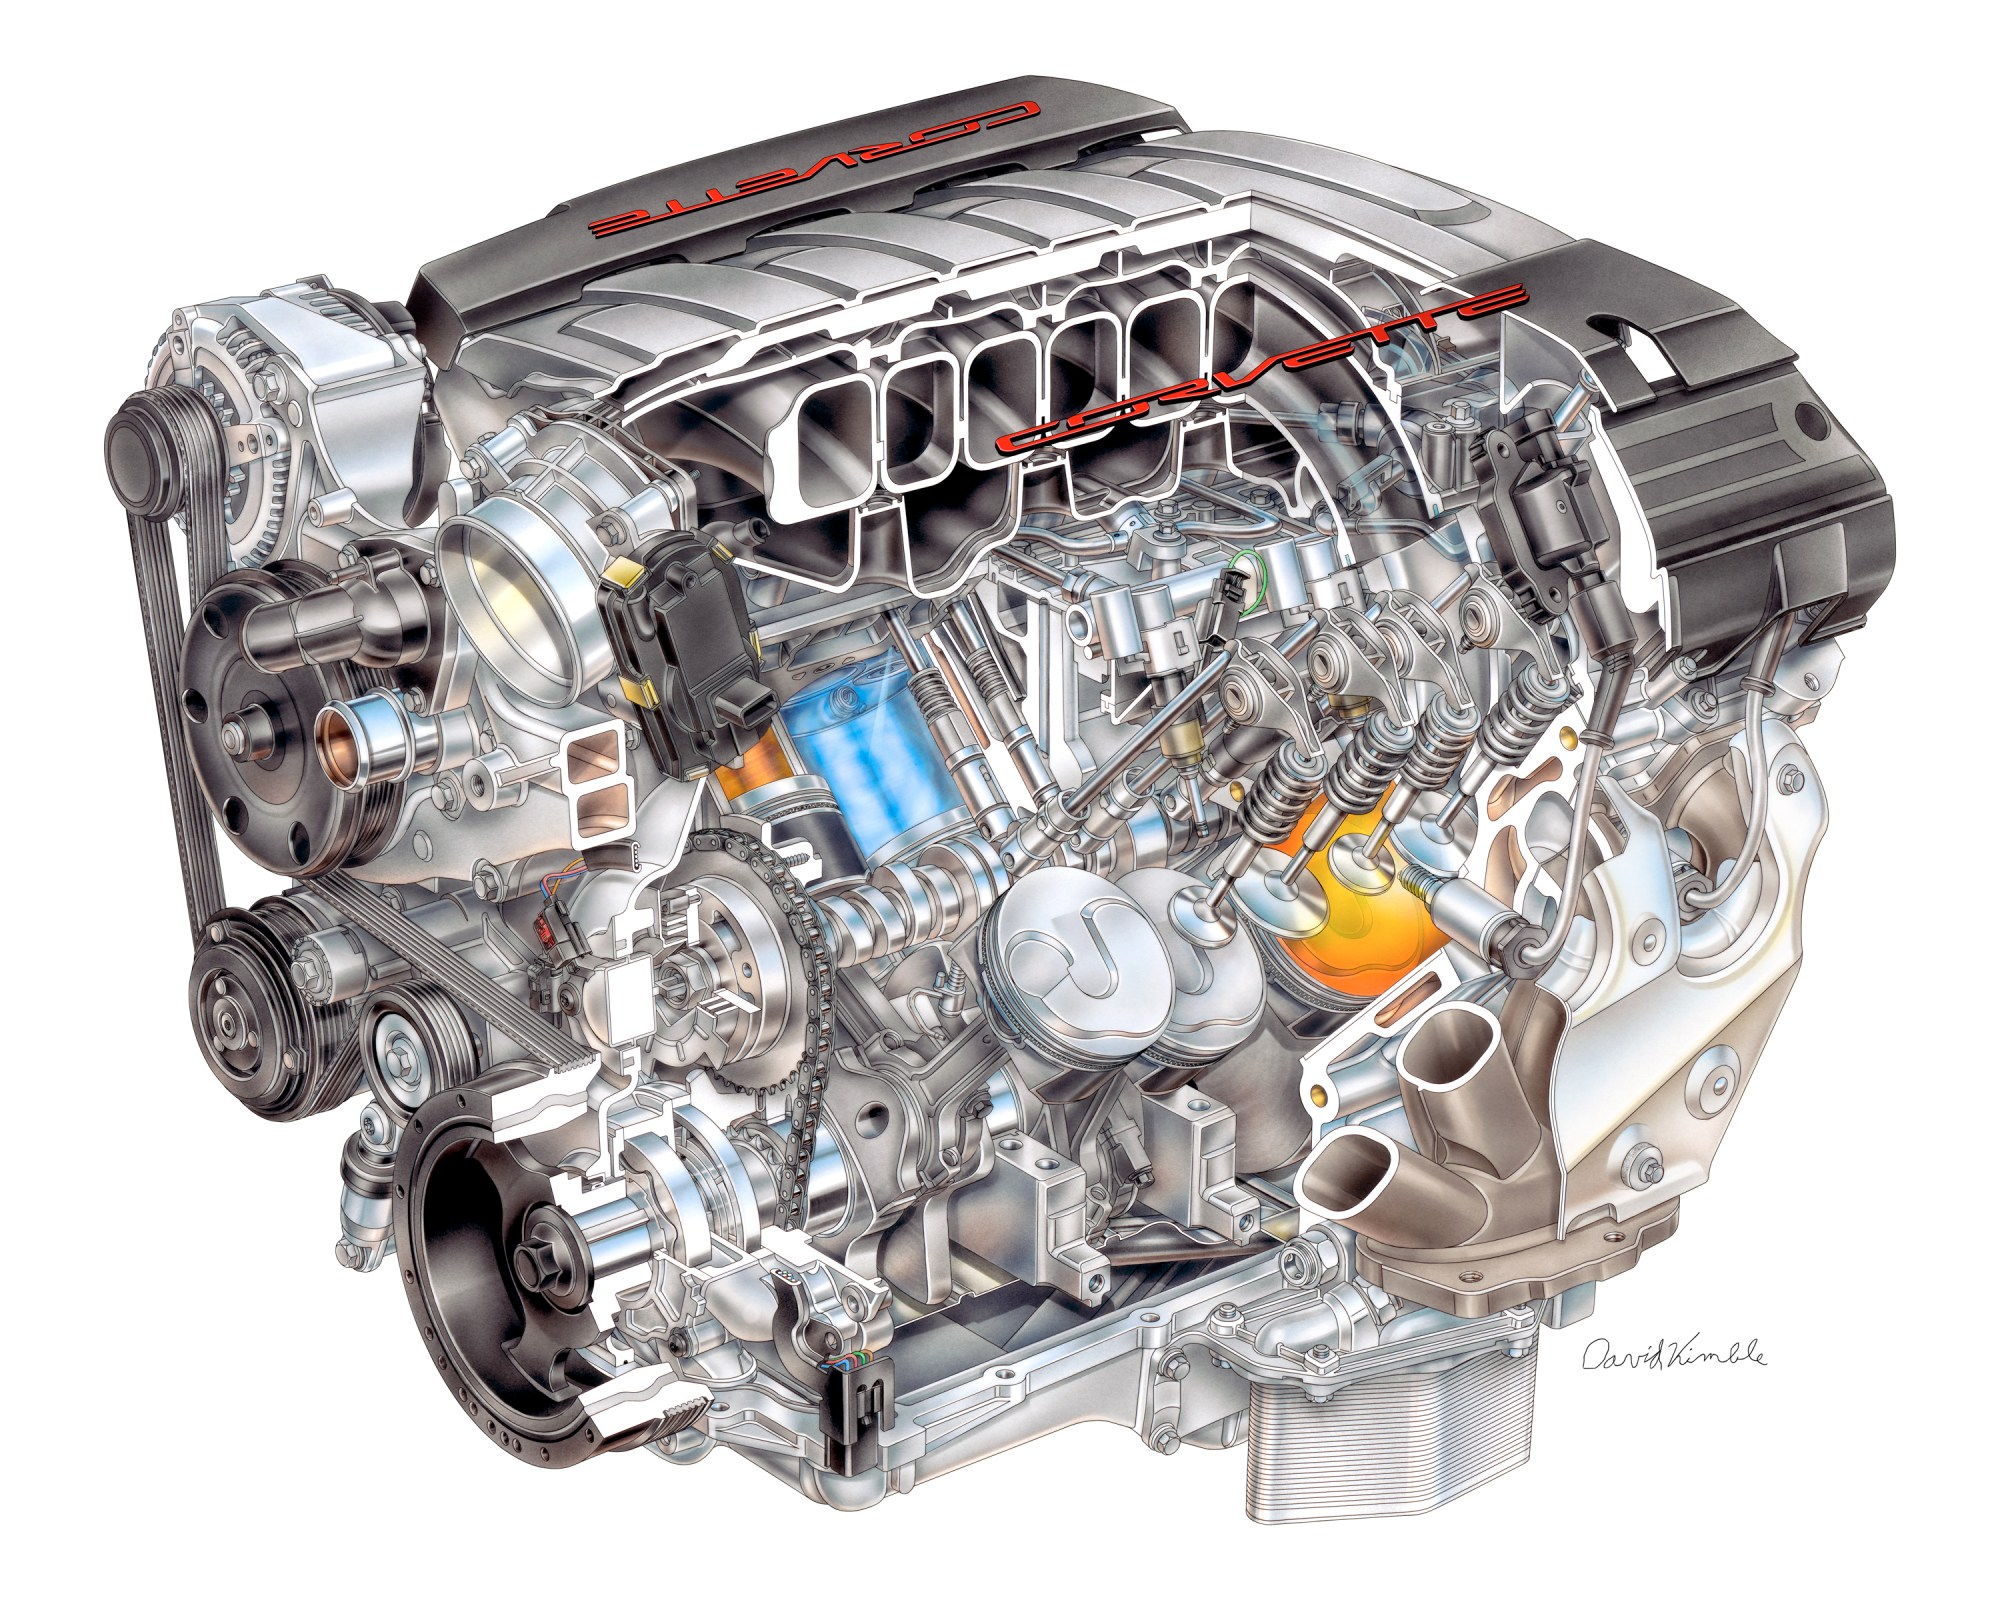 hight resolution of chevrolet introduces the all new lt1 v8 engine for the c7 corvette corvette c7 engine diagram